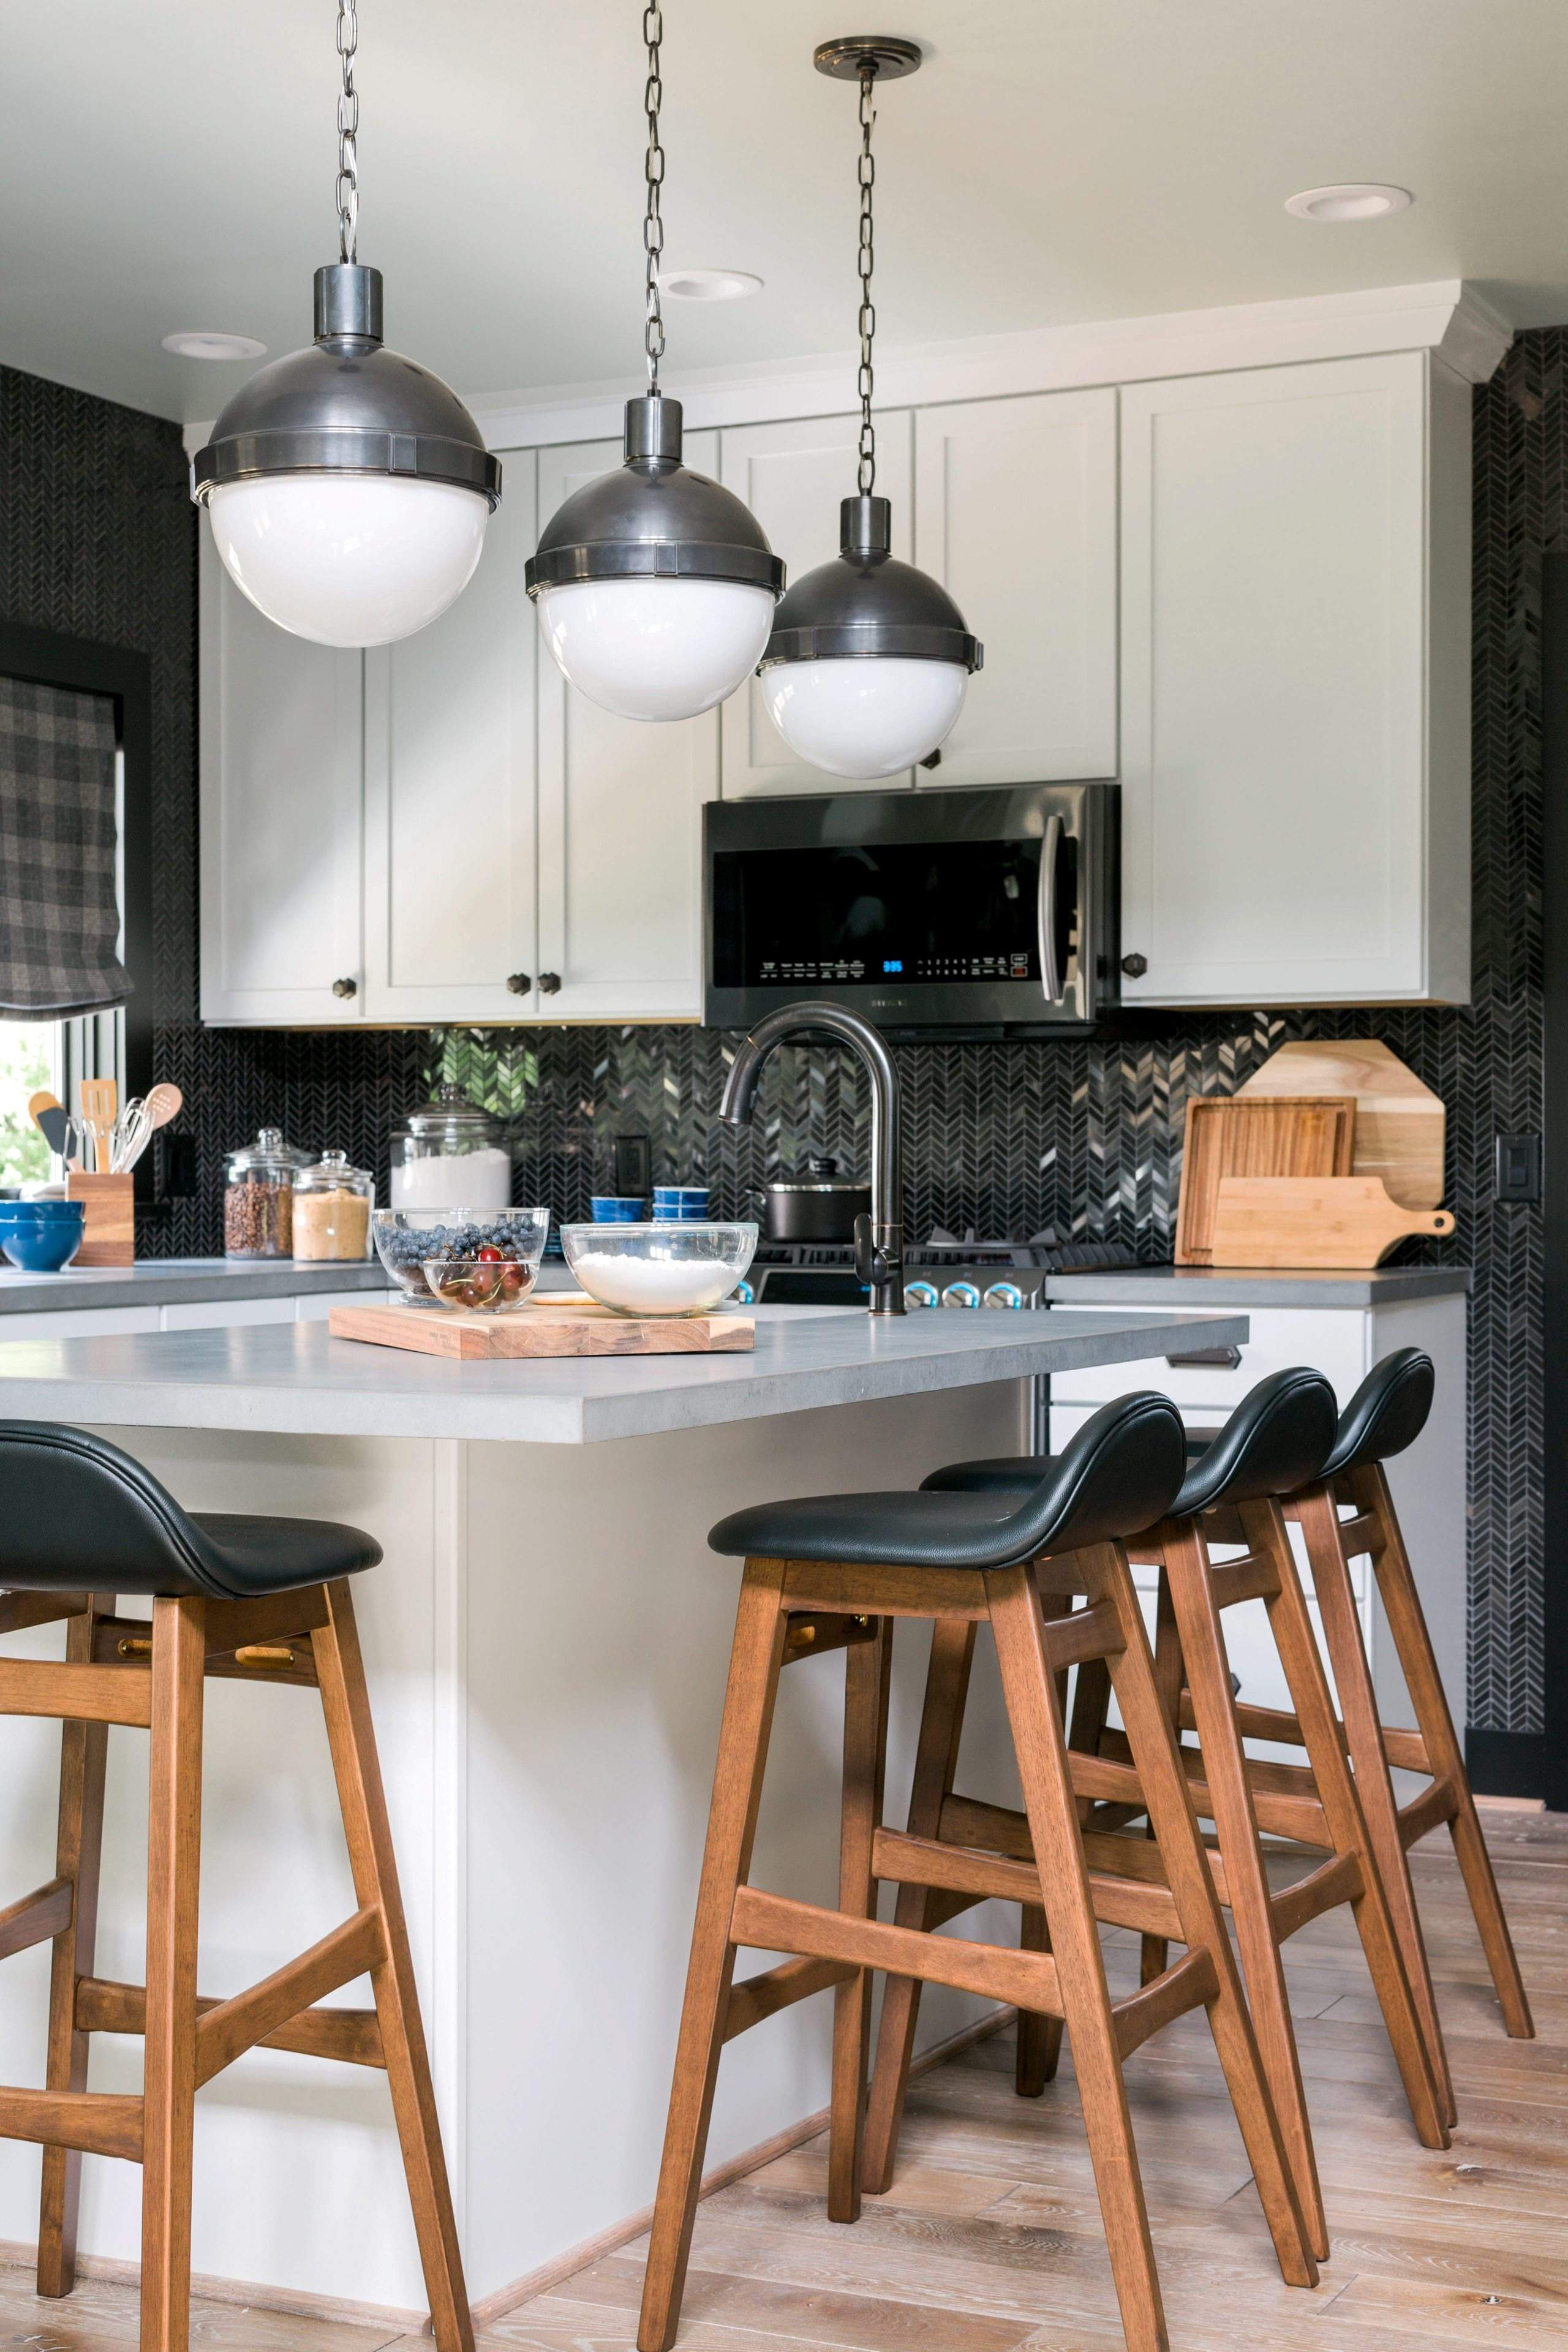 So Whats Cooking In The Kitchen - What's new in kitchen lighting